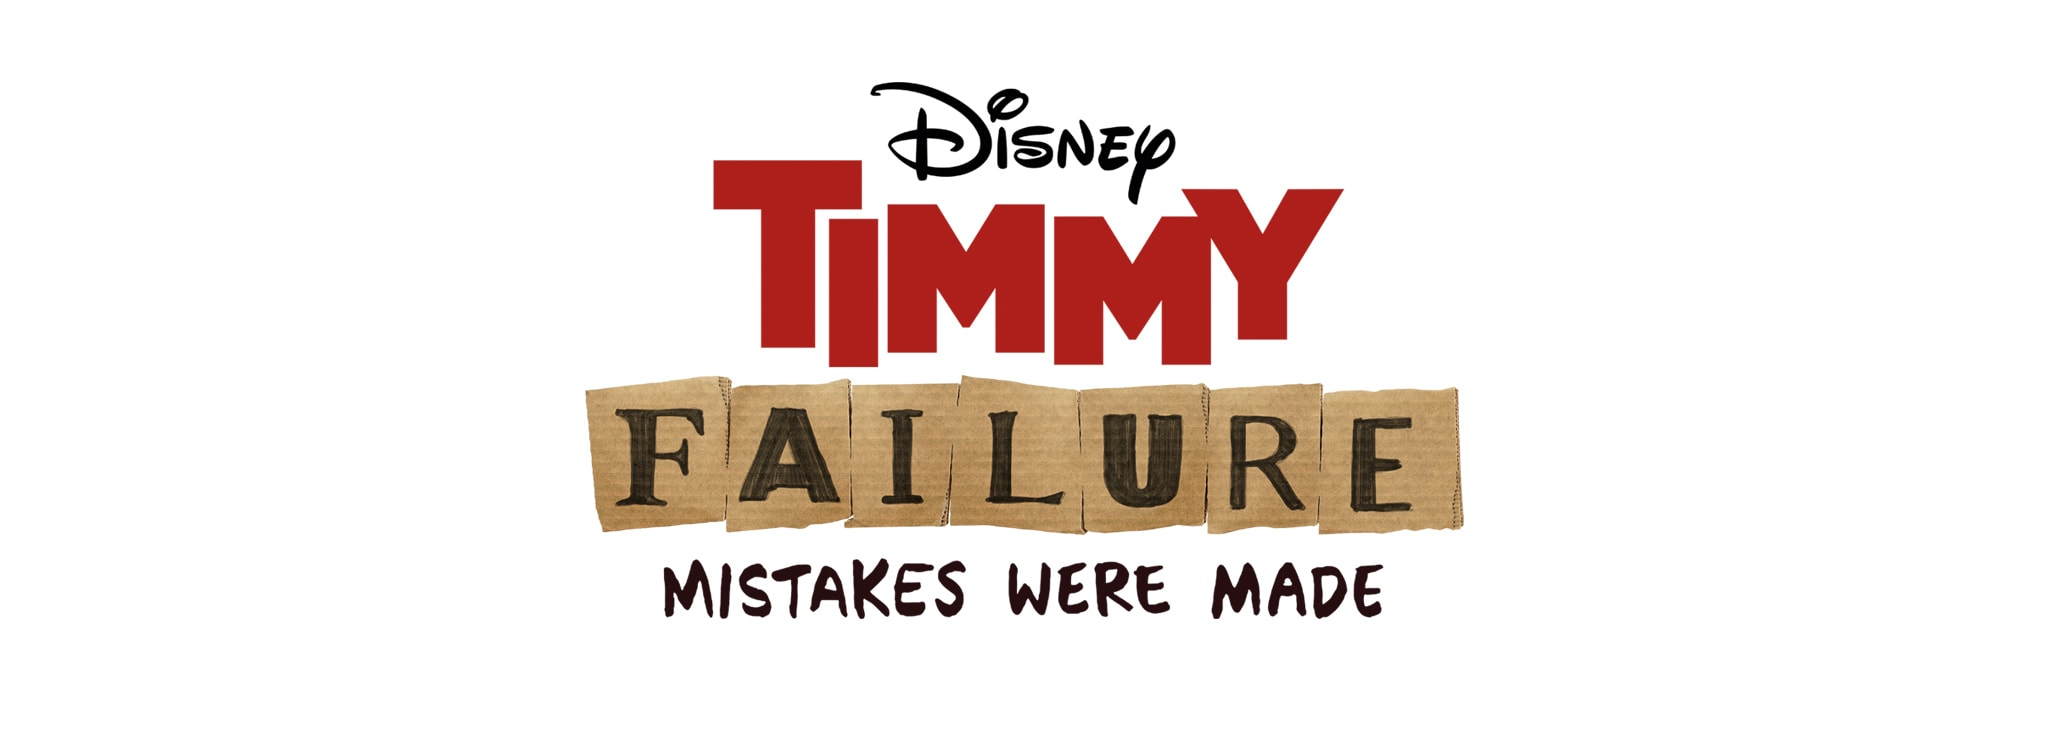 Disney Timmy Failure: Mistakes Were Made